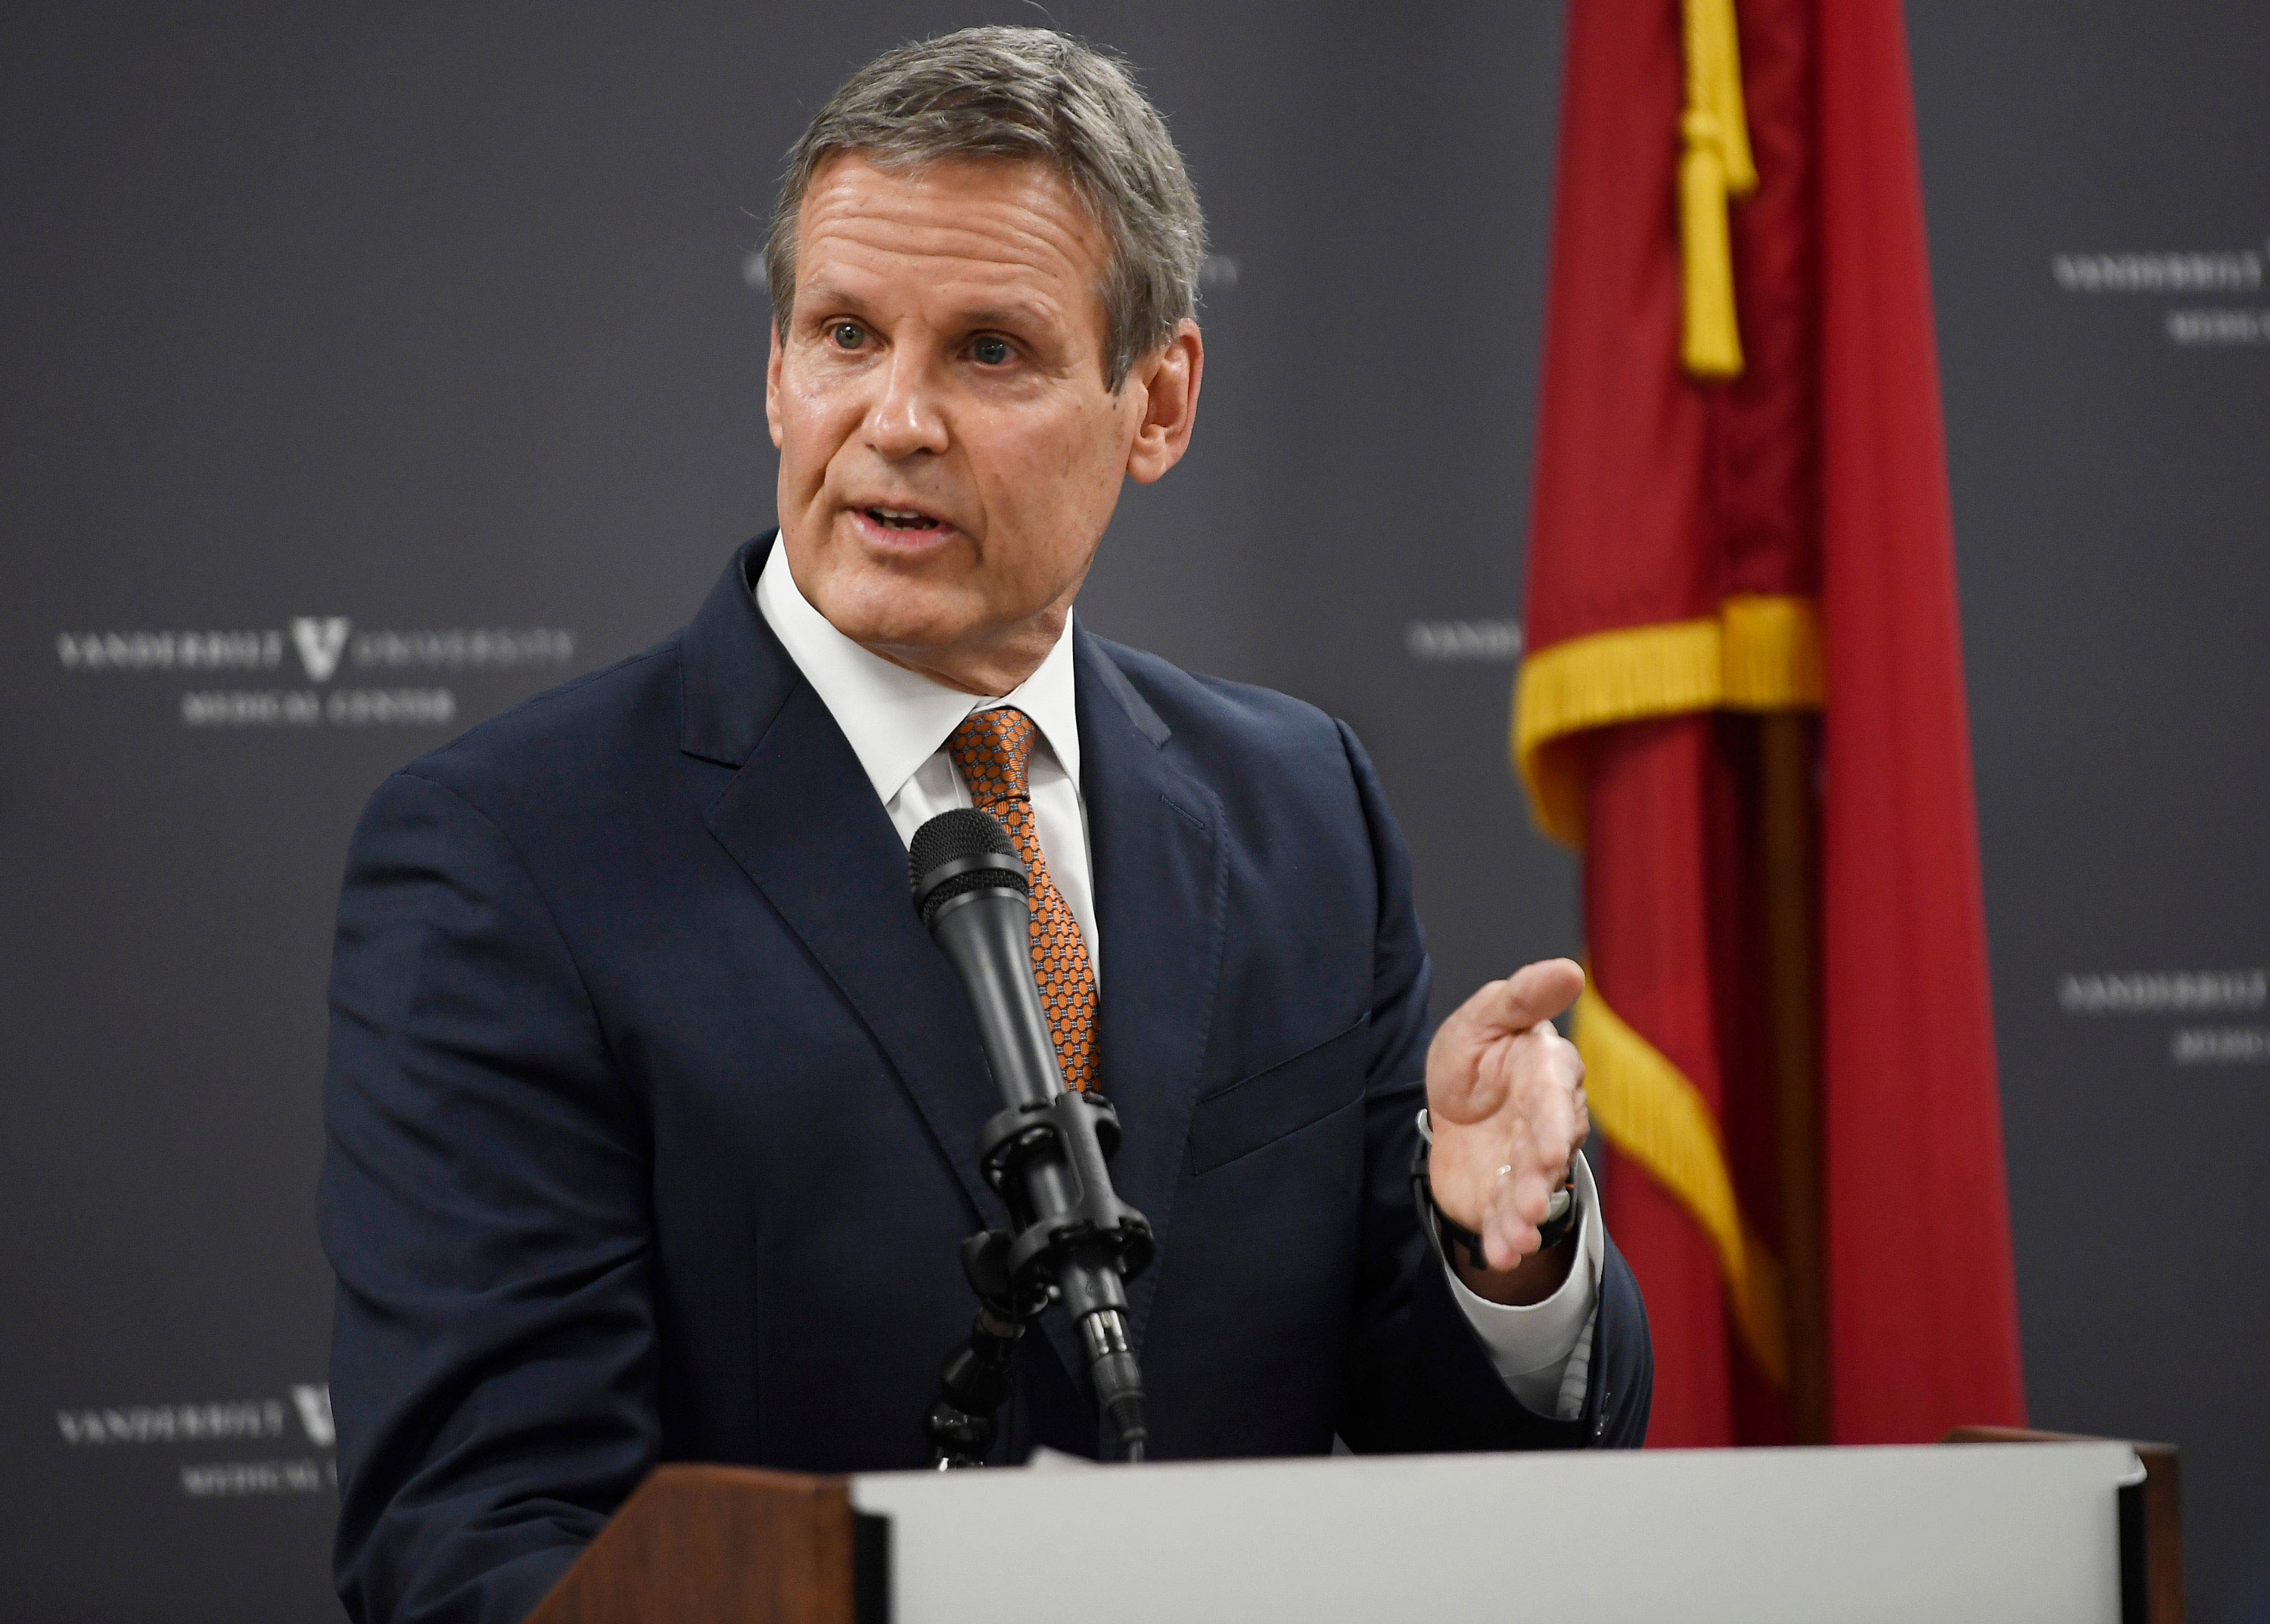 Tennessee Gov. Bill Lee speaks at a press conference in Nashville on December 17.